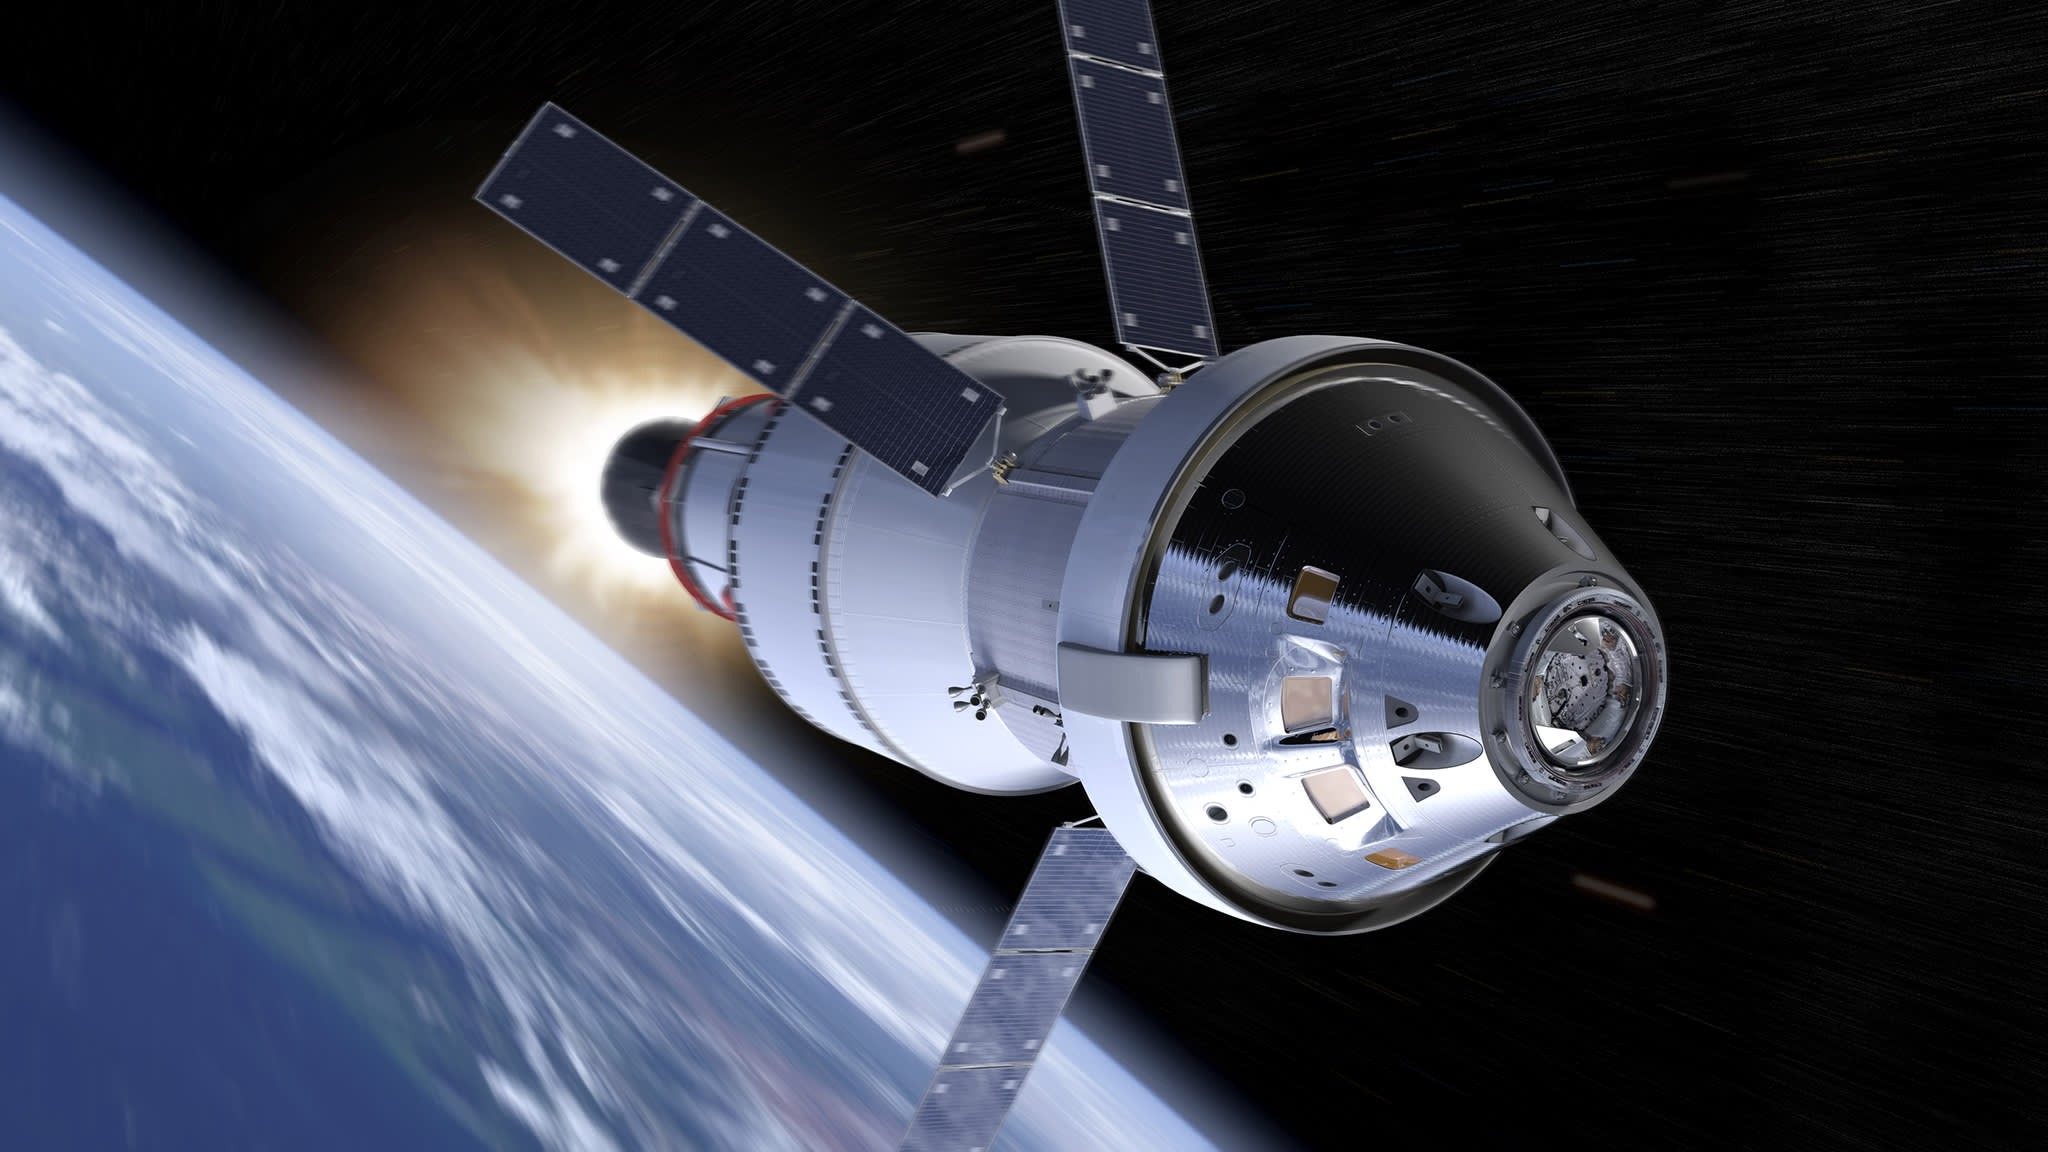 Space's next frontier entices upstarts and mainstays | Financial Times